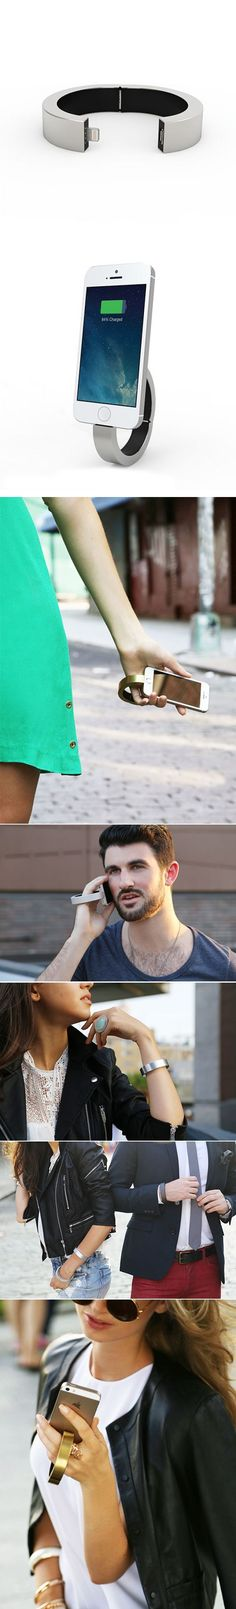 Looks nice! The QBracelet is a jewelry piece designed for both men and women and doubles up as a charger for Smartphones and other compatible devices.